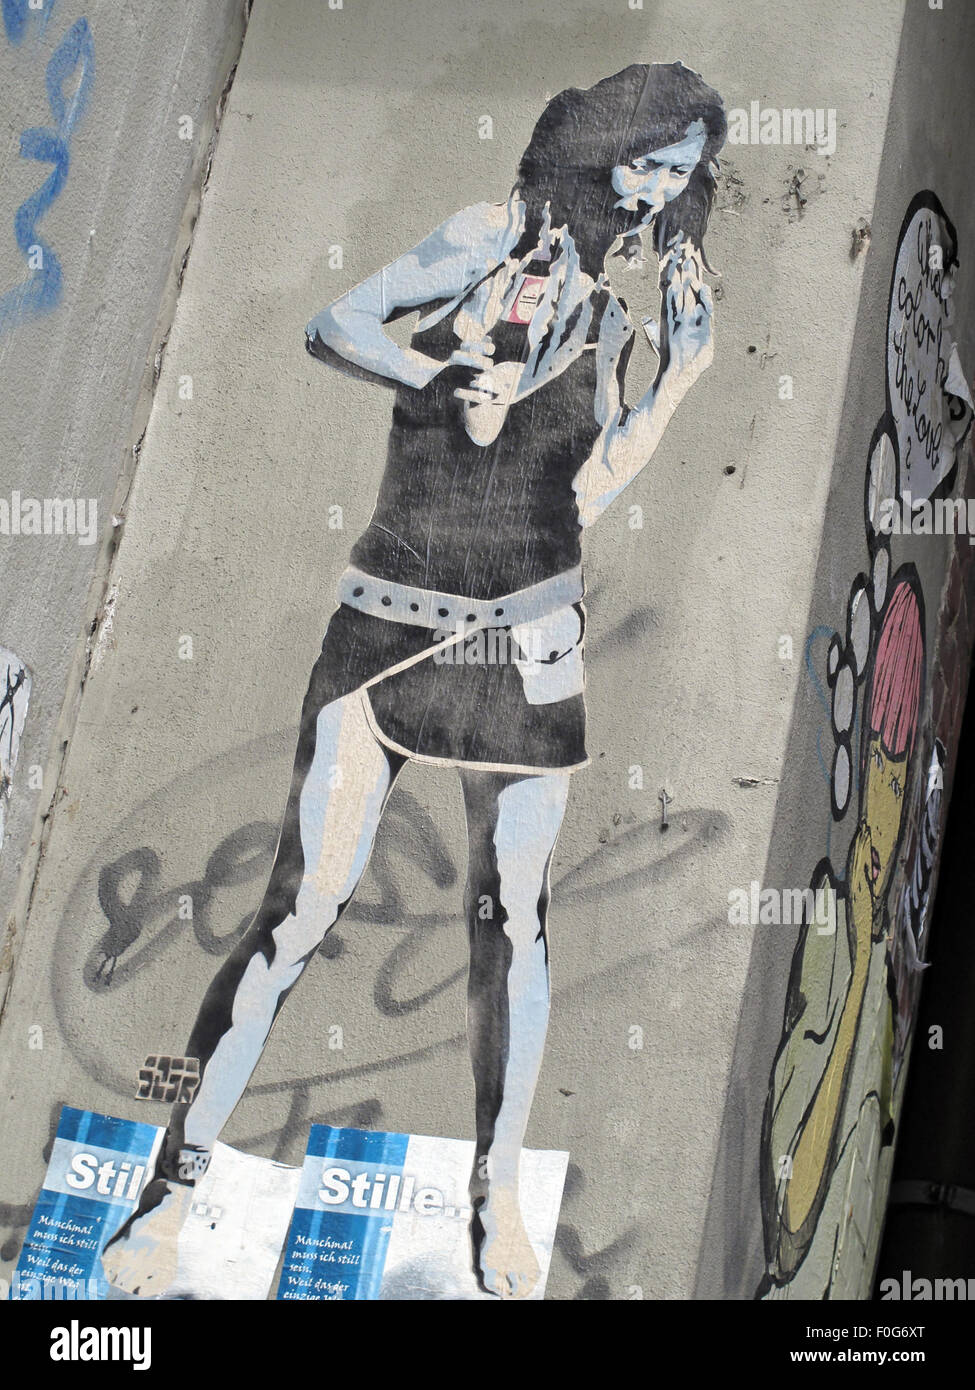 Berlin Mitte,Street art on walls,Germany- Drinking beer from a bottle,eating - Stock Image